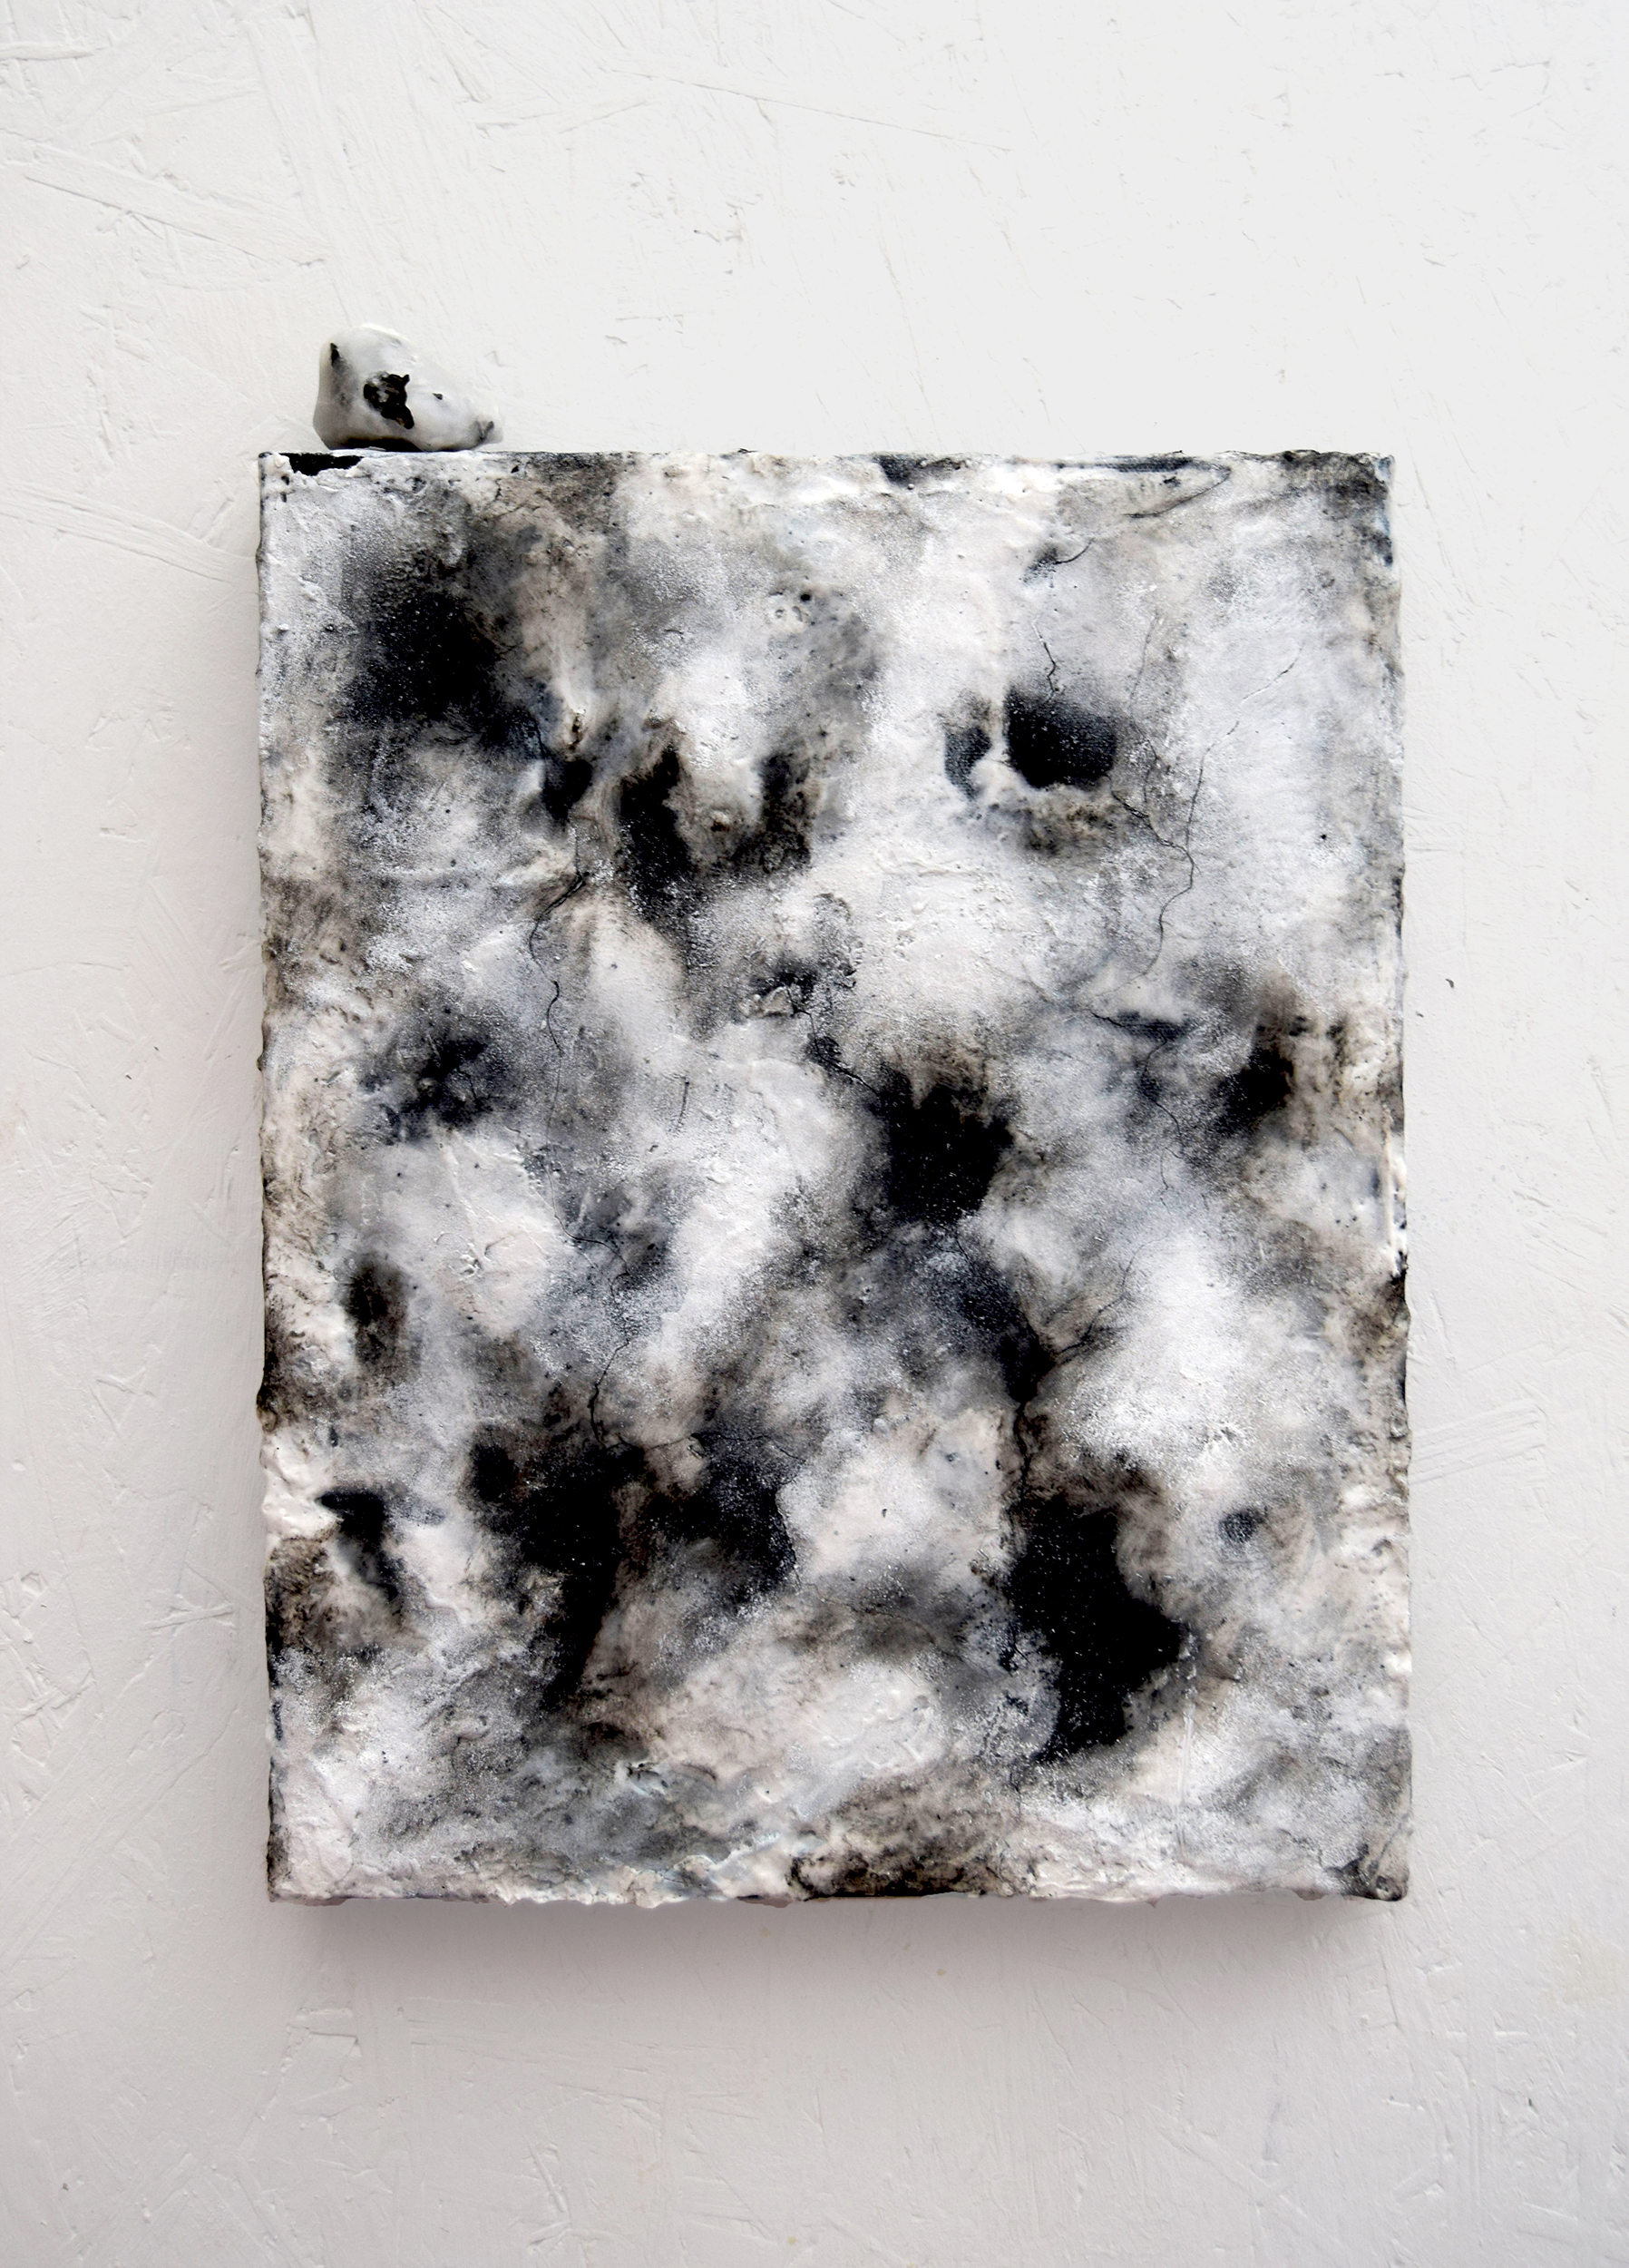 Black and white textural painting which looks like ice melting with a small sculpture placed on top